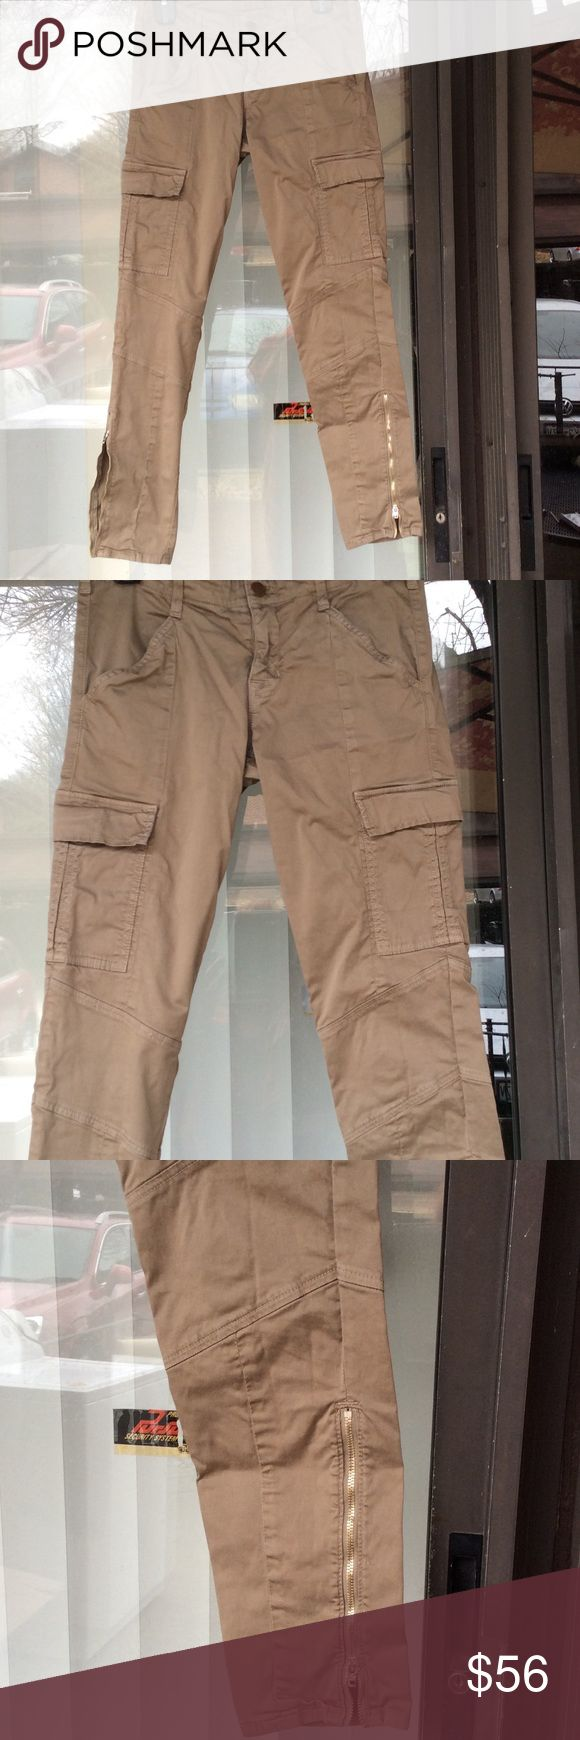 J.Brand for Barneys New York khakis Preown but good condition,stretchy J Brand Jeans